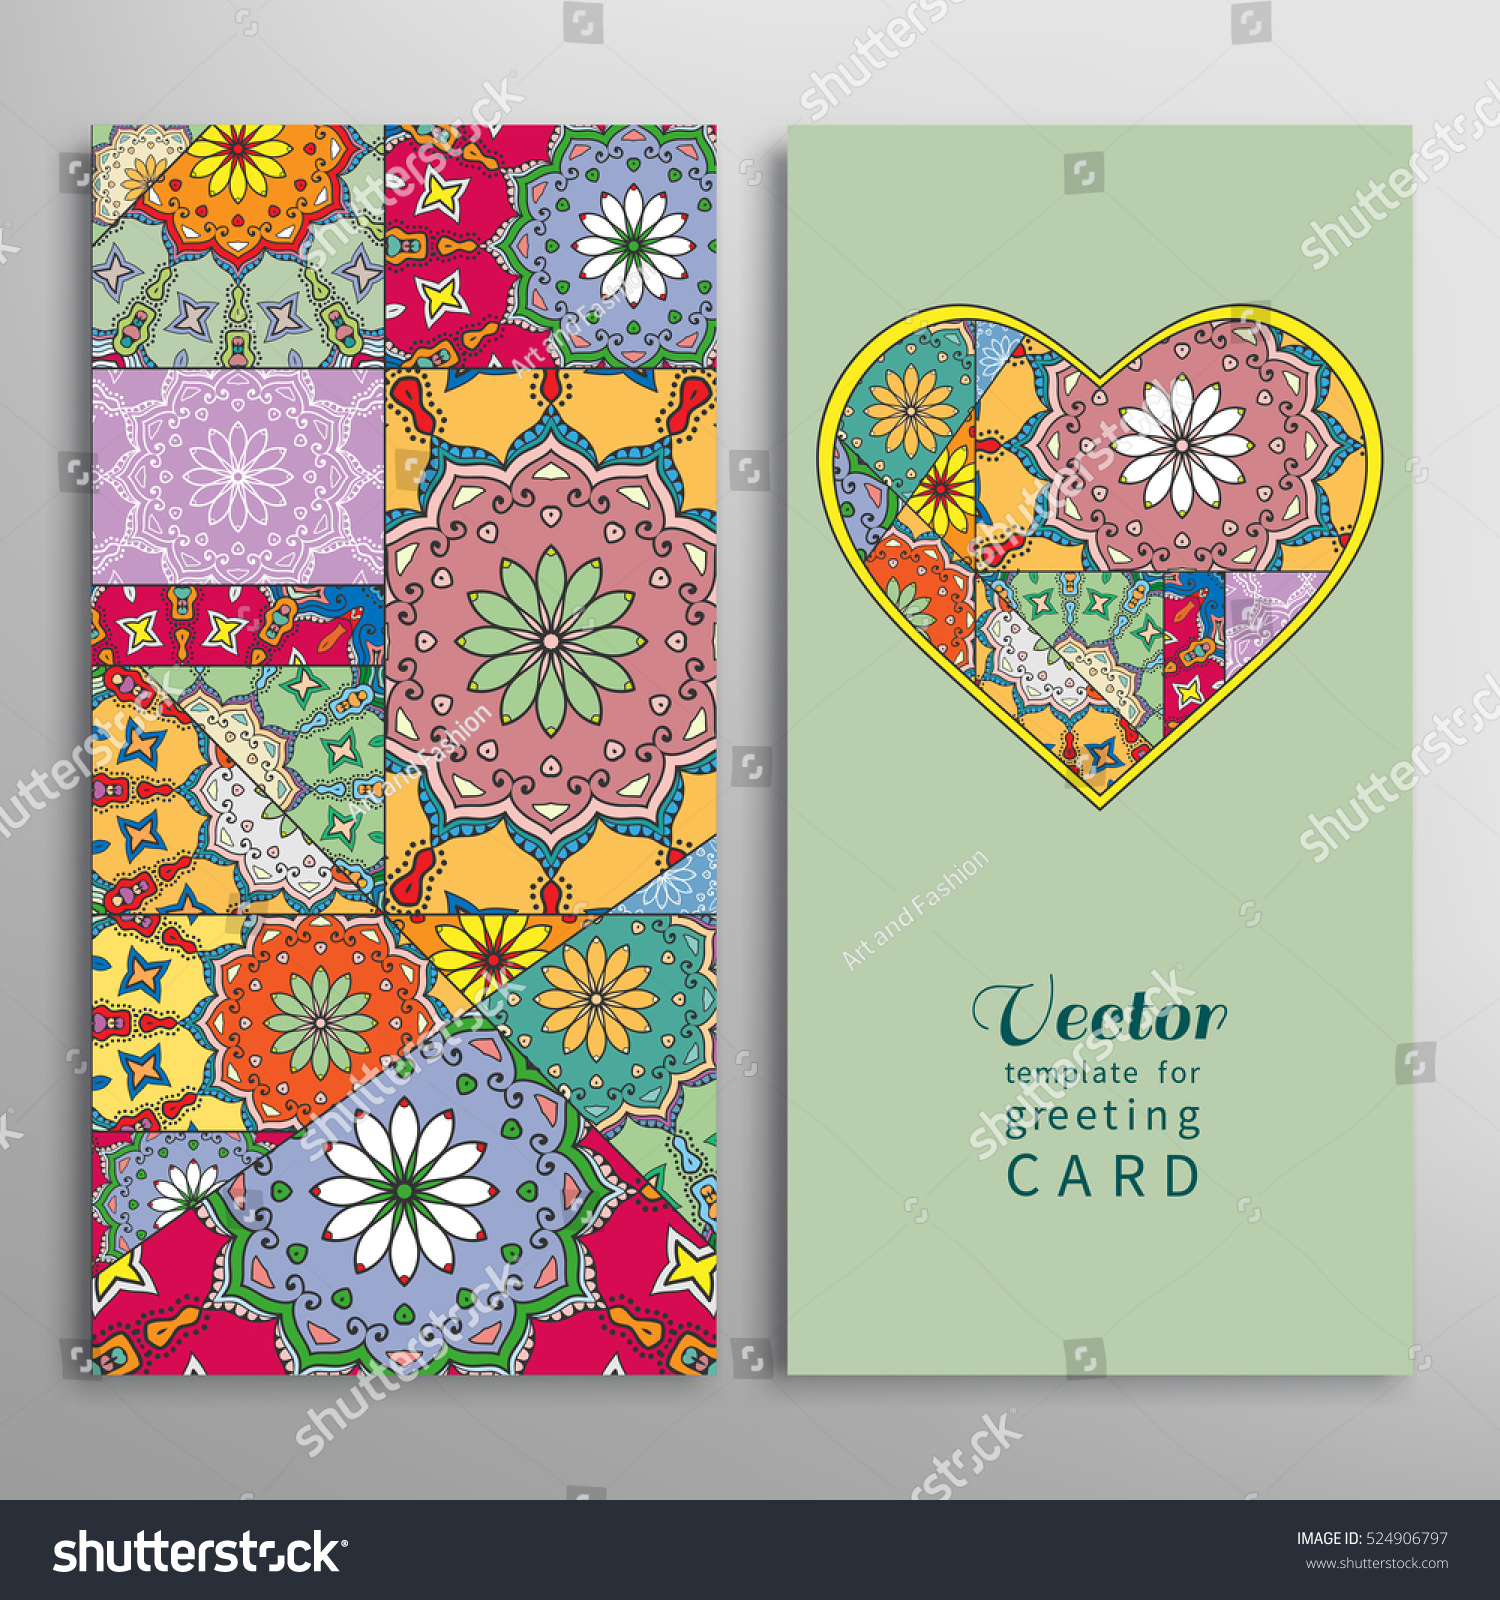 Card Invitation Ornate Collage Heart Background Stock Vector